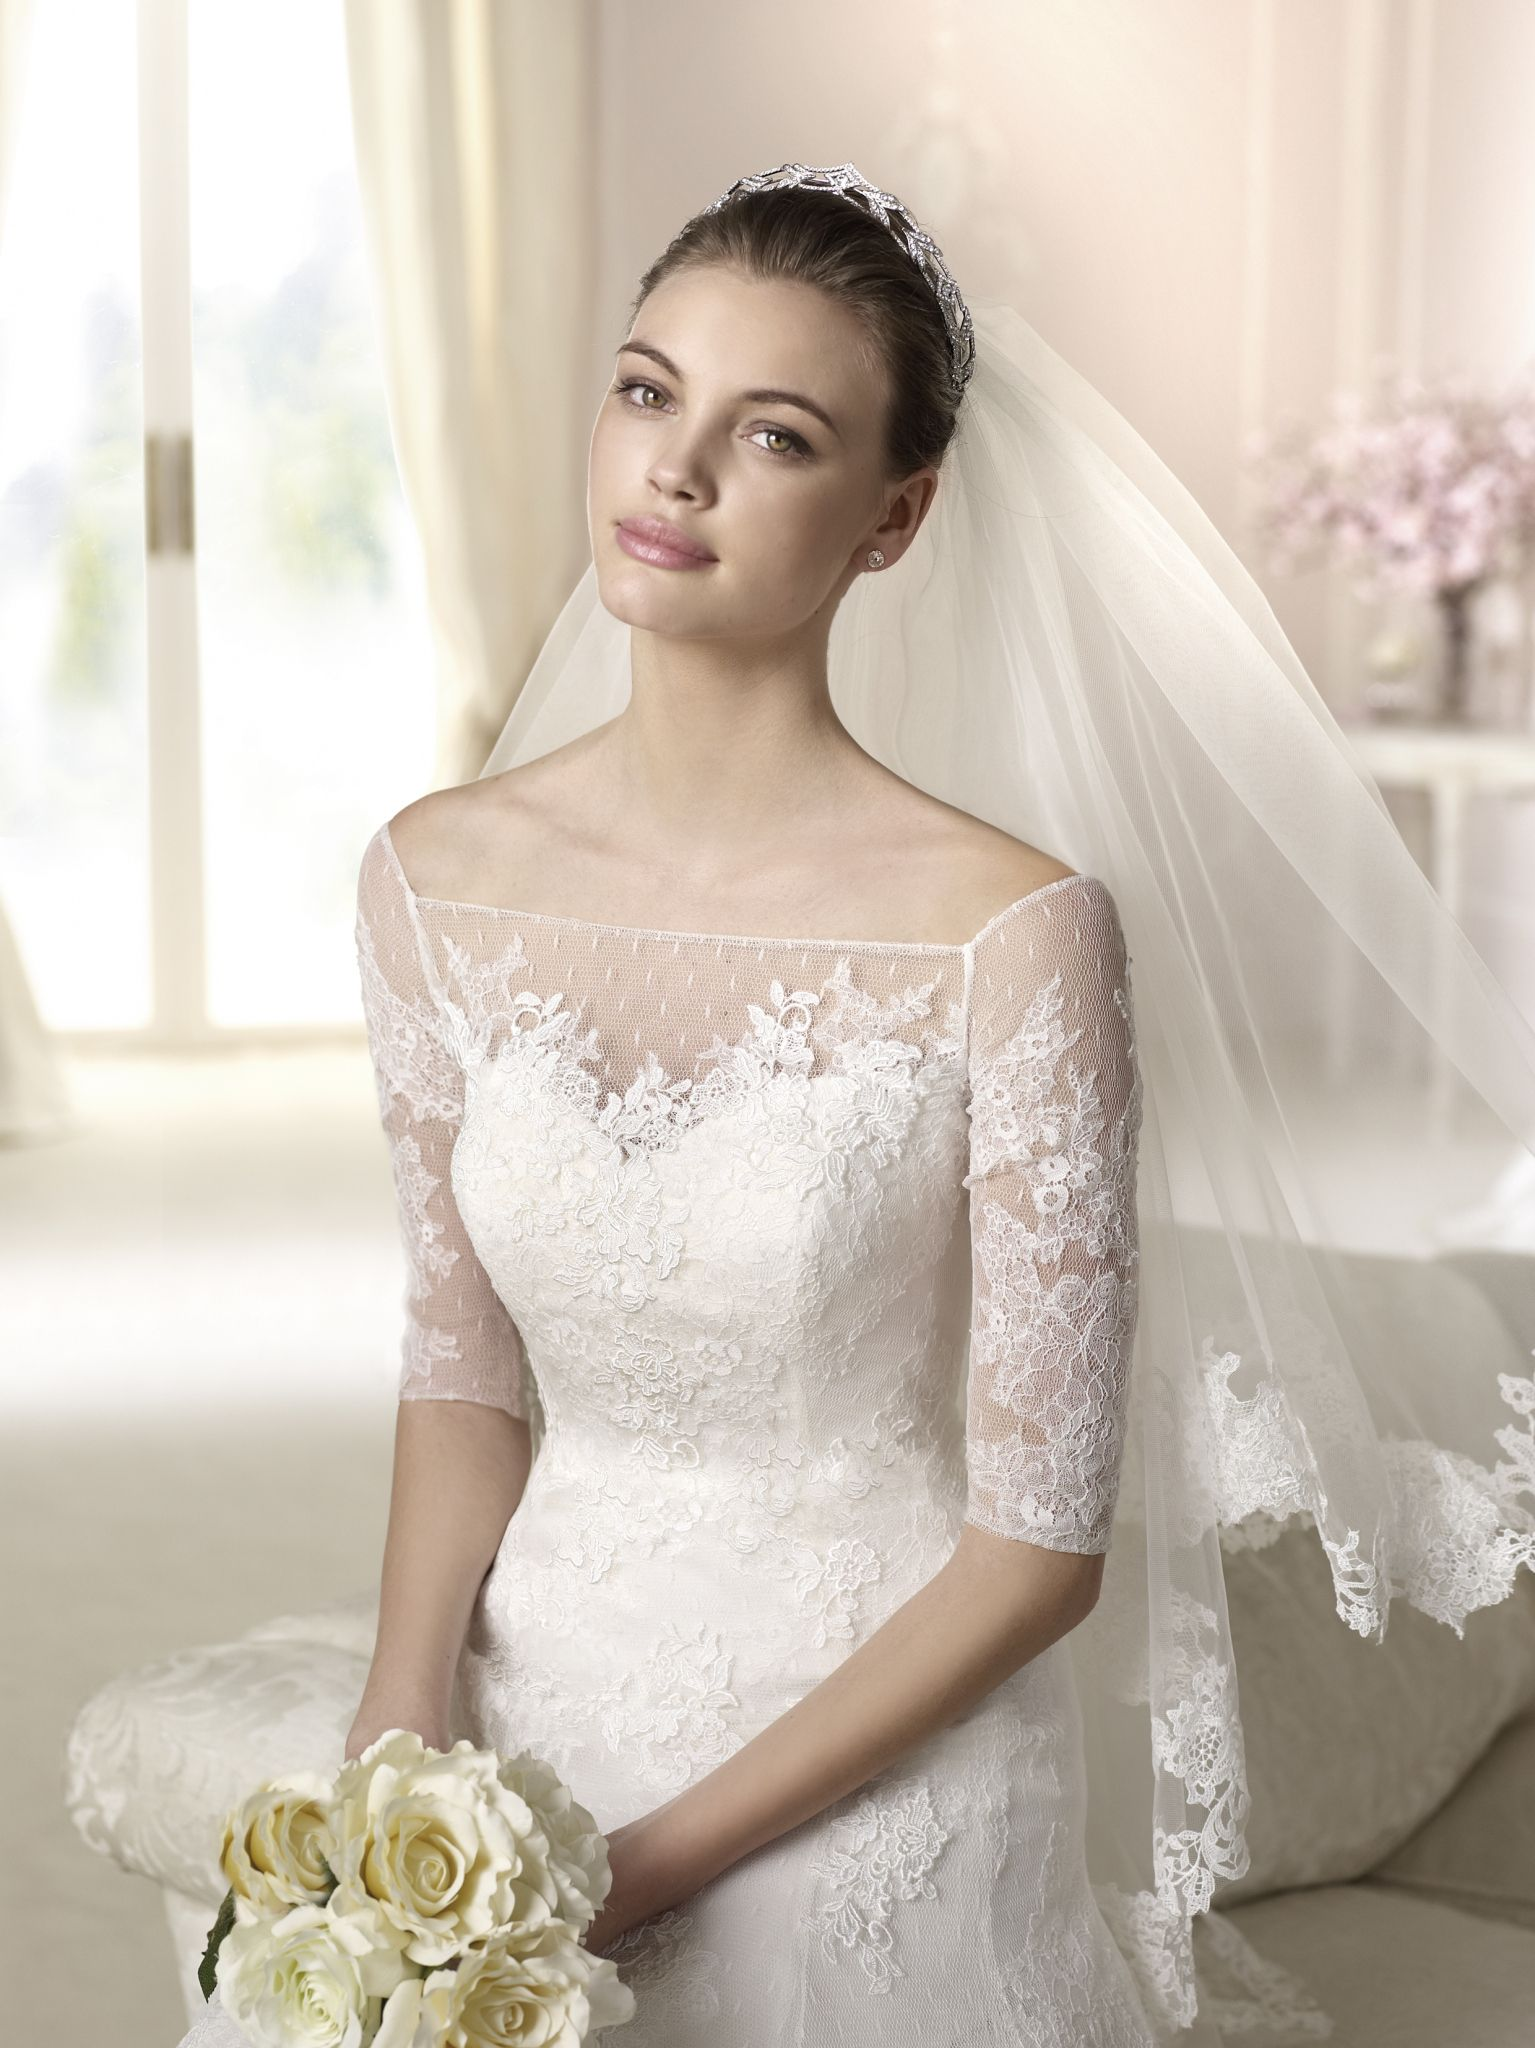 Wedding Dresses Rental Prices - Wedding Dresses for Fall Check more ...